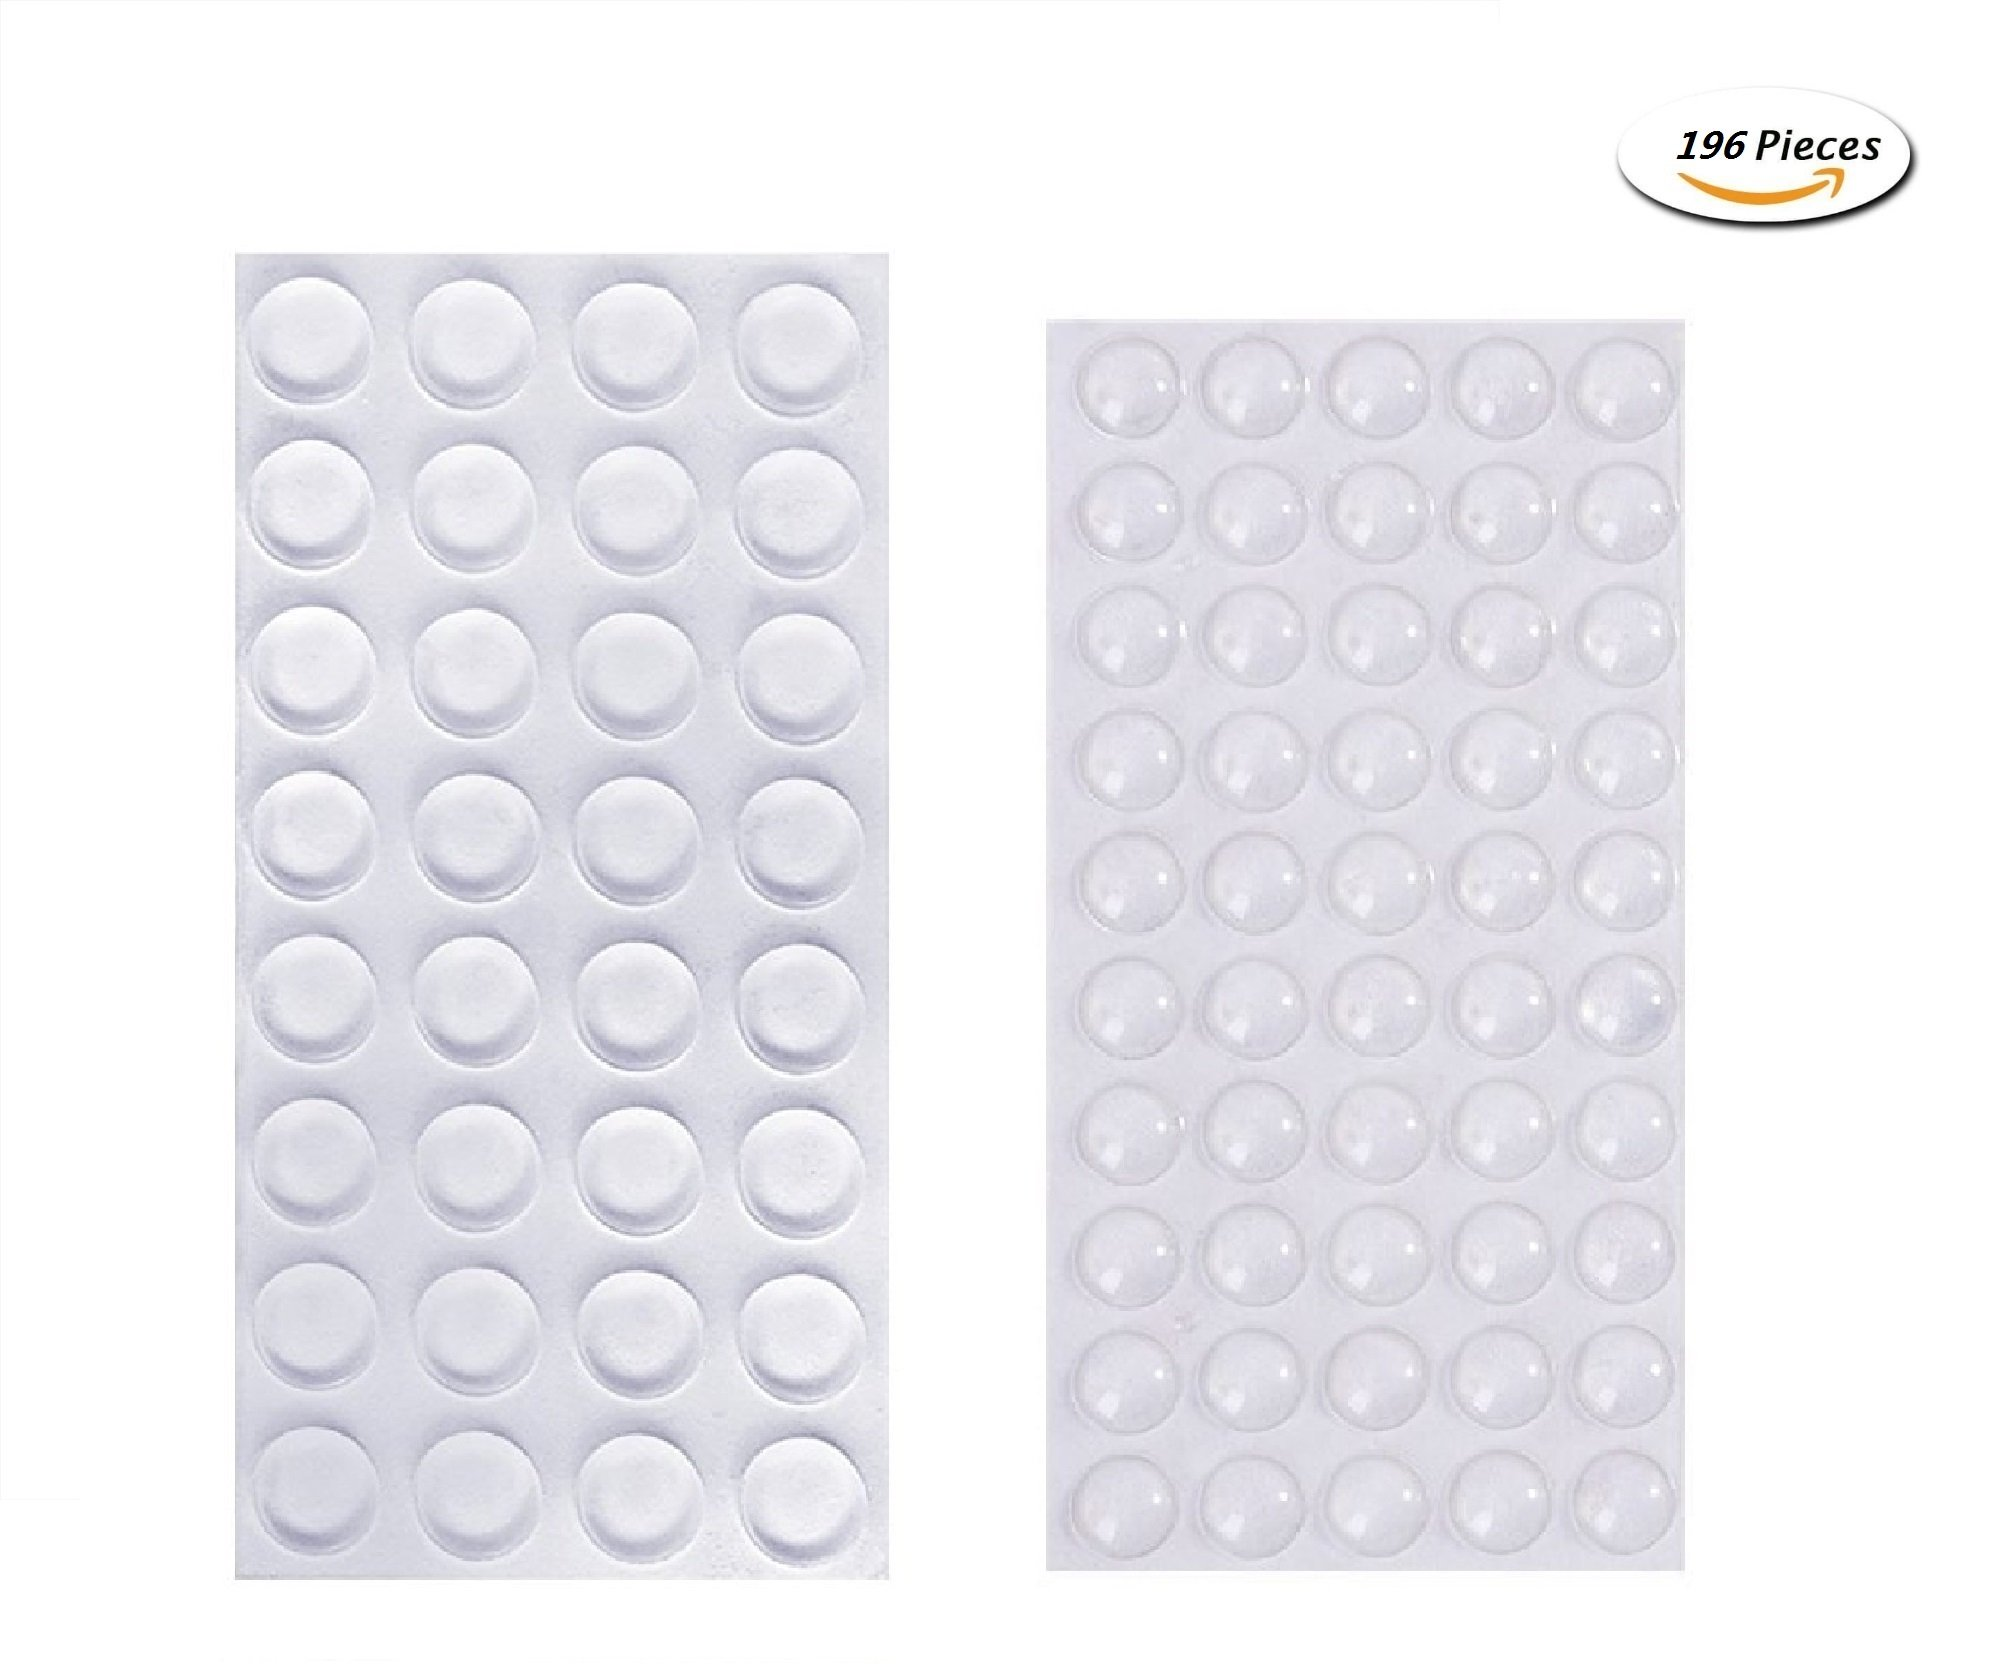 HAWORTHS 196 Pack Small Door Bumpers Self-Adhesive Clear Rubber Feet Tiny Bumpons - 100 Pack 10mm (Dia) X 3mm (H) Hemispherical Shape,96 Pack 11mm (Dia) X 3mm (H) Cylindrical Shape